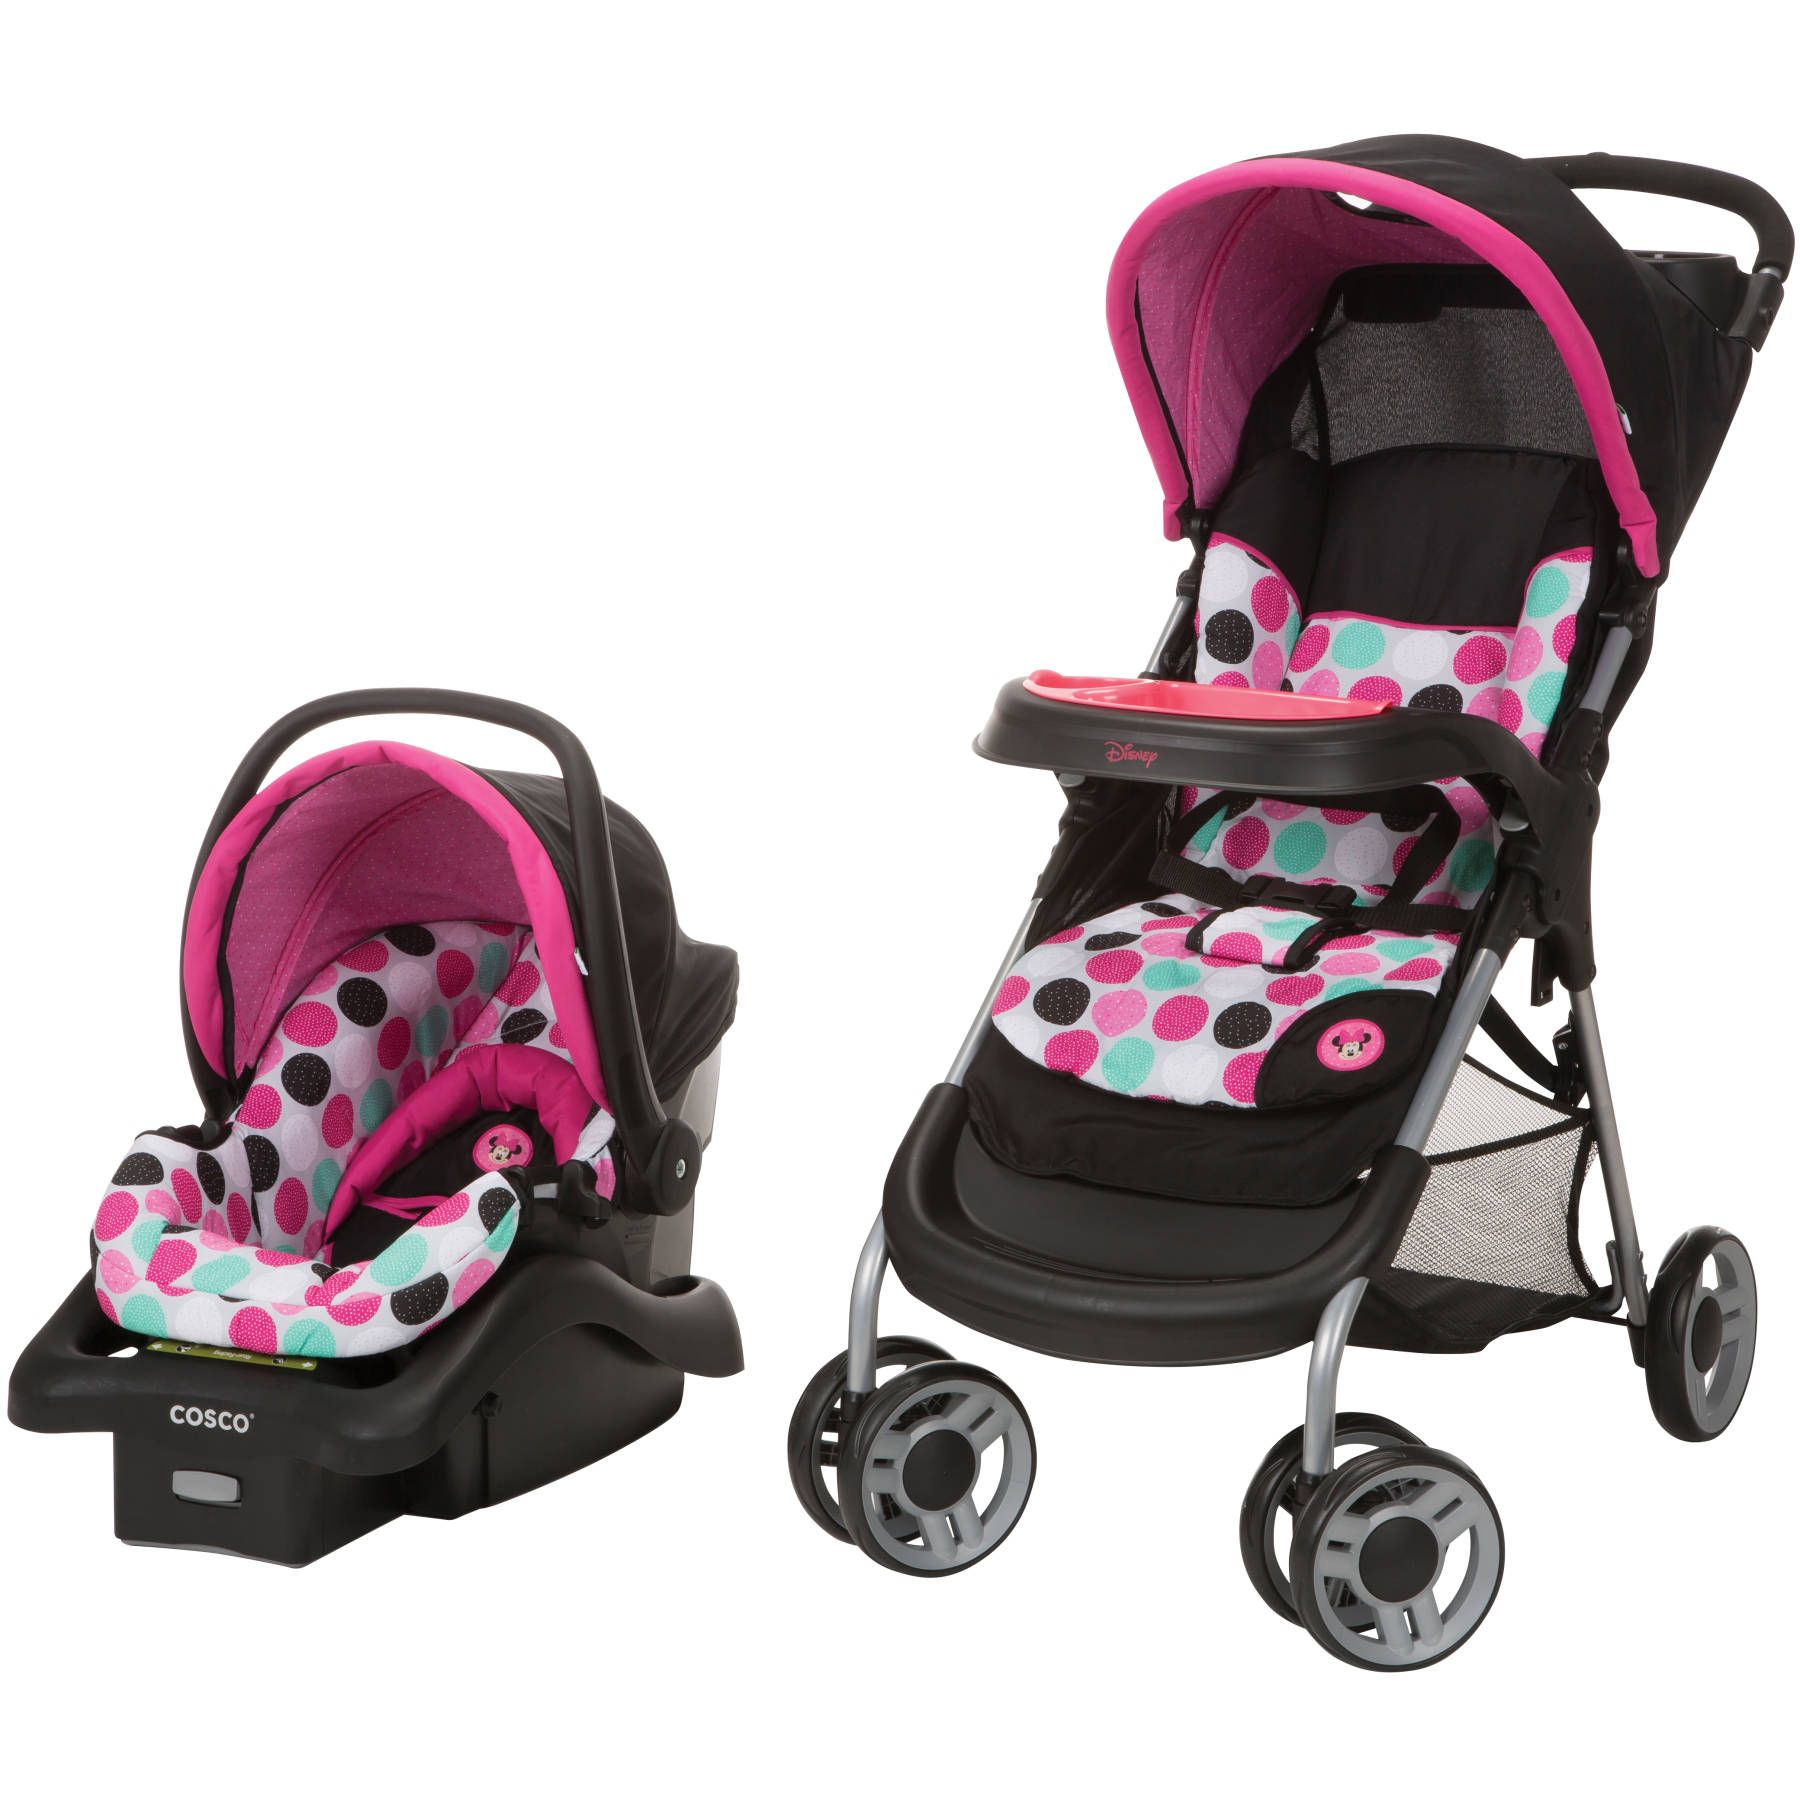 MINNIE MOUSE Dotty Lift and Stroll Plus Travel System from